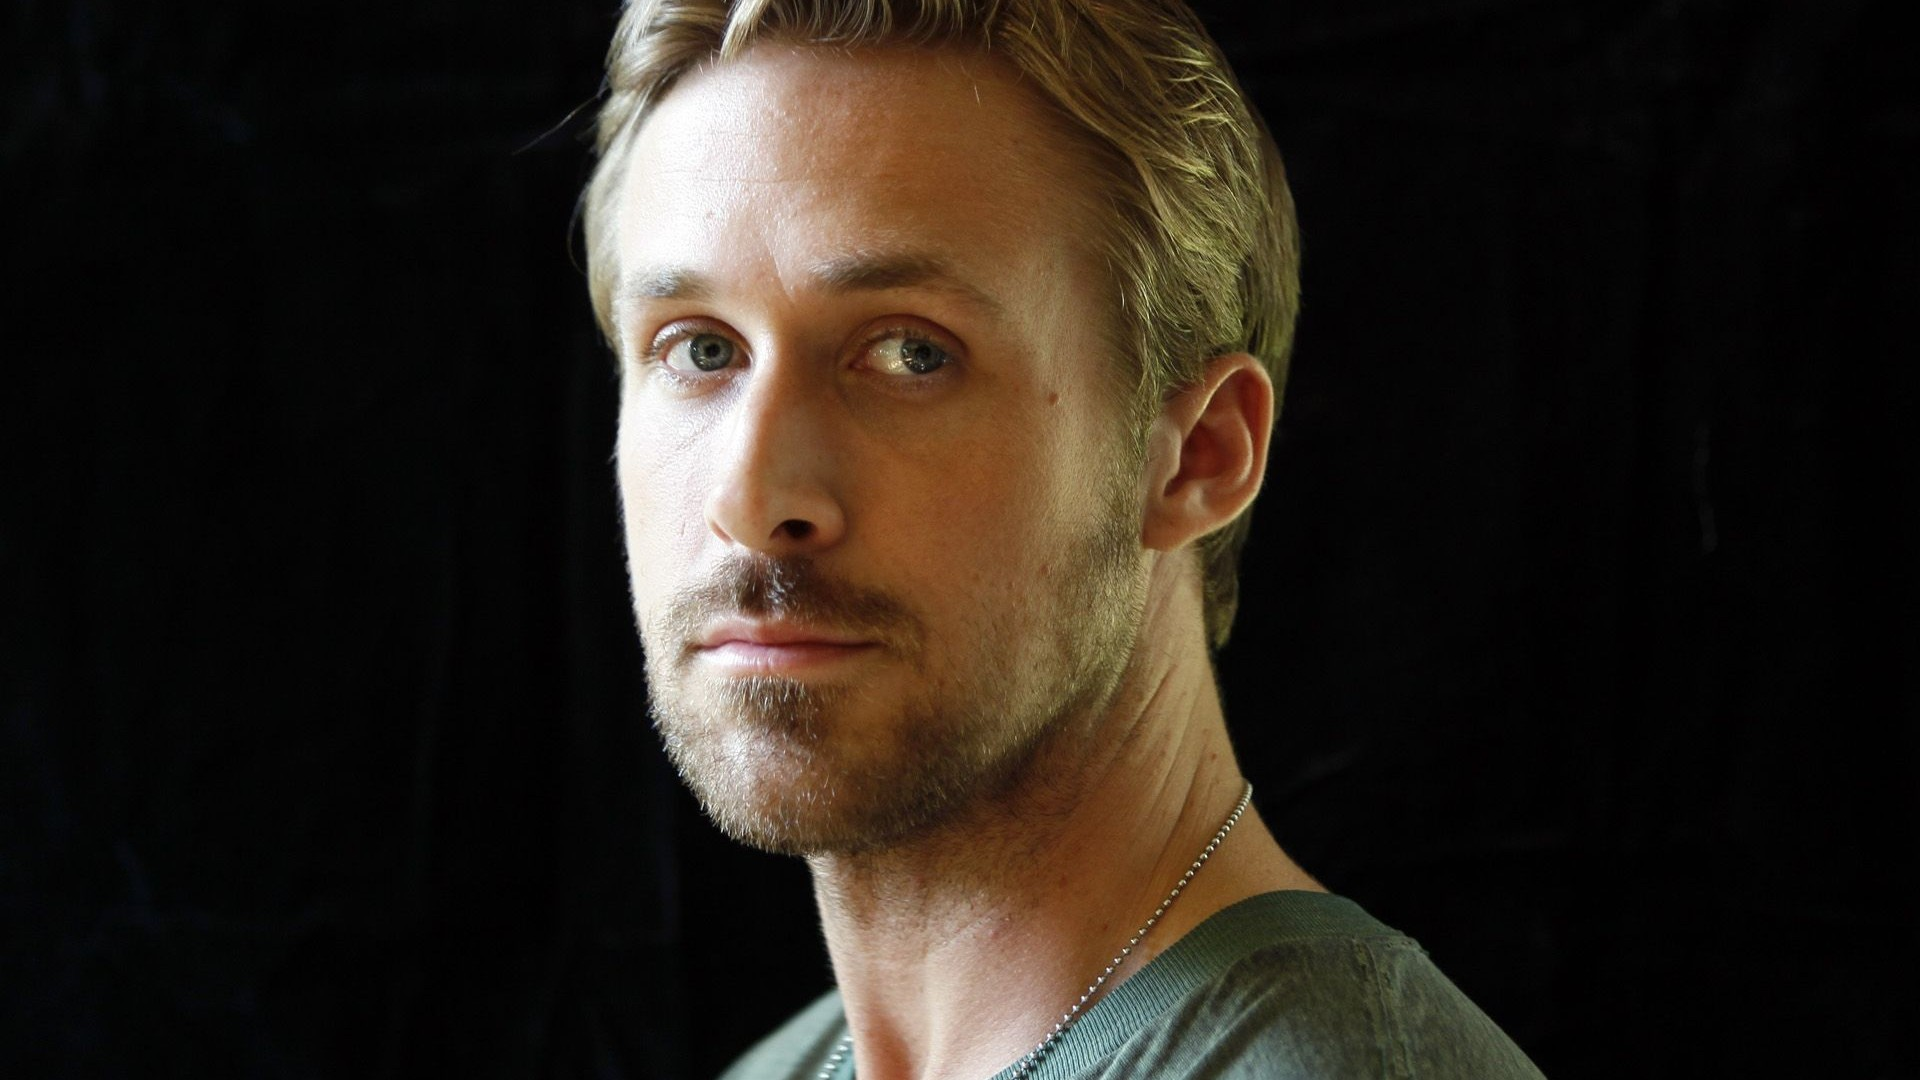 ryan gosling pictures latest